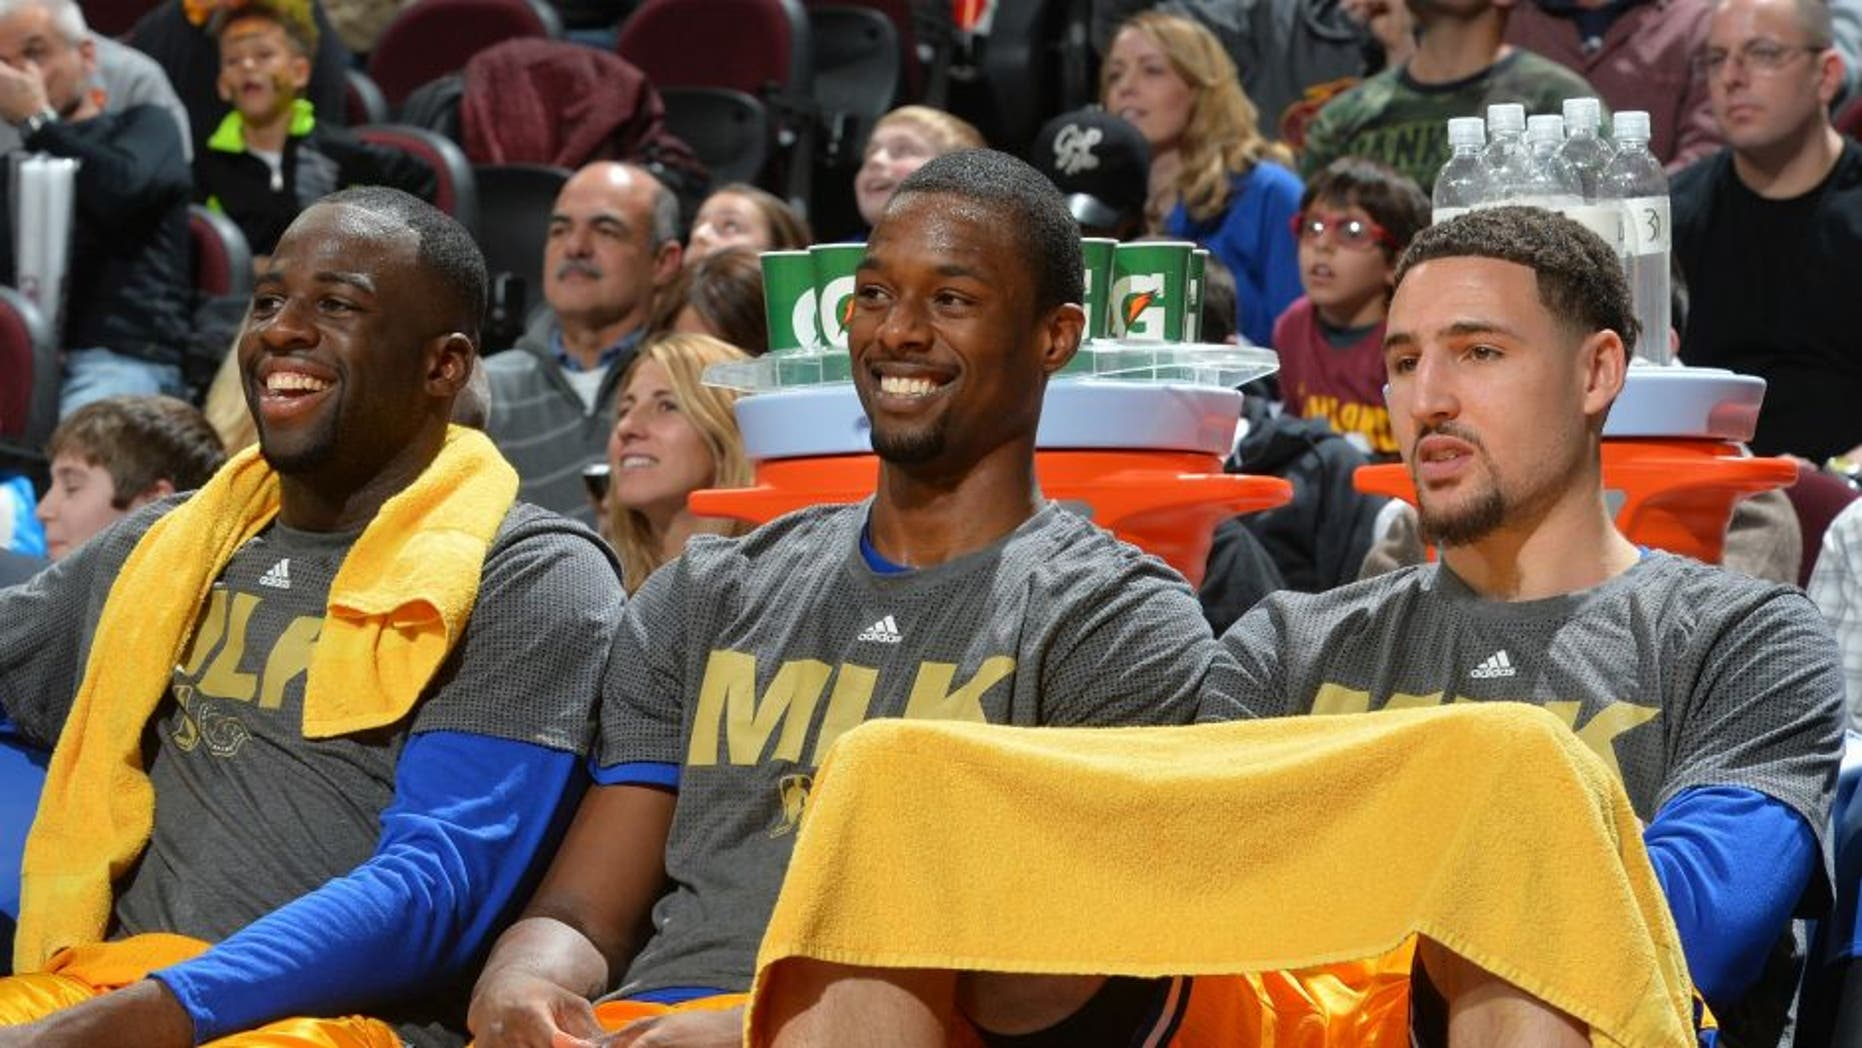 CLEVELAND, OH - JANUARY 18: Harrison Barnes #40, Draymond Green #23 , Stephen Curry #30 and Klay Thompson #11 of the Golden State Warriors smiles from the bench against the Cleveland Cavaliers on January 18, 2016 at Quicken Loans Arena in Cleveland, Ohio. NOTE TO USER: User expressly acknowledges and agrees that, by downloading and/or using this Photograph, user is consenting to the terms and conditions of the Getty Images License Agreement. Mandatory Copyright Notice: Copyright 2016 NBAE (Photo by Jesse D. Garrabrant/NBAE via Getty Images)